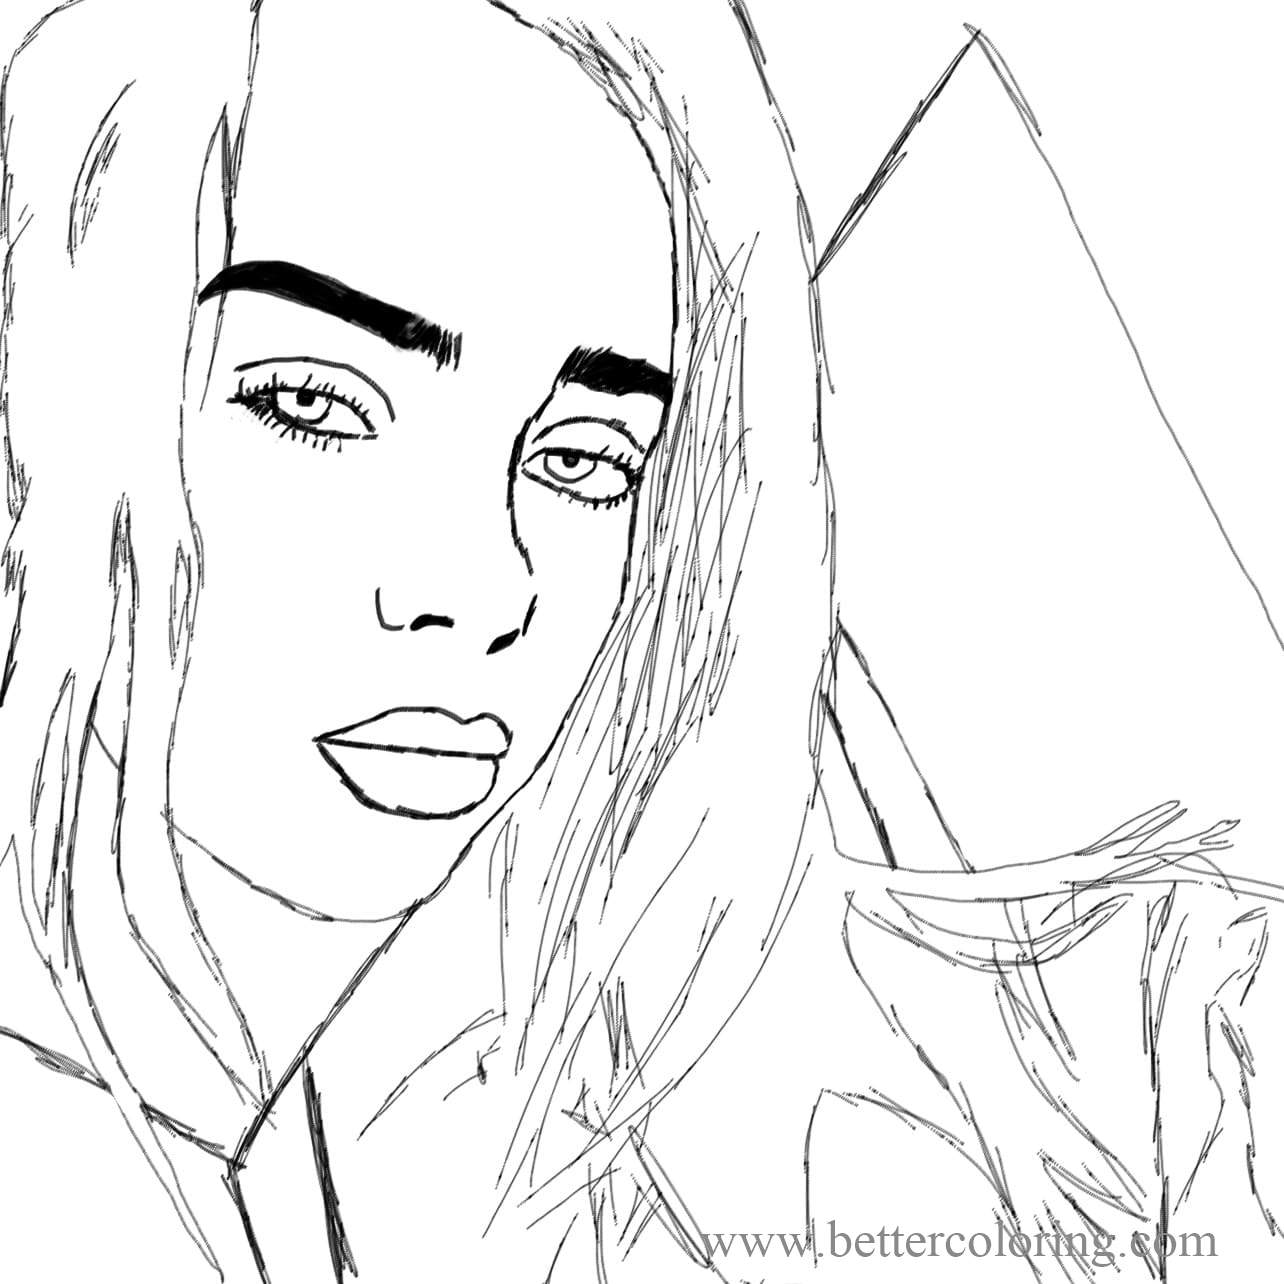 Free Billie Eilish Sketch Coloring Pages printable